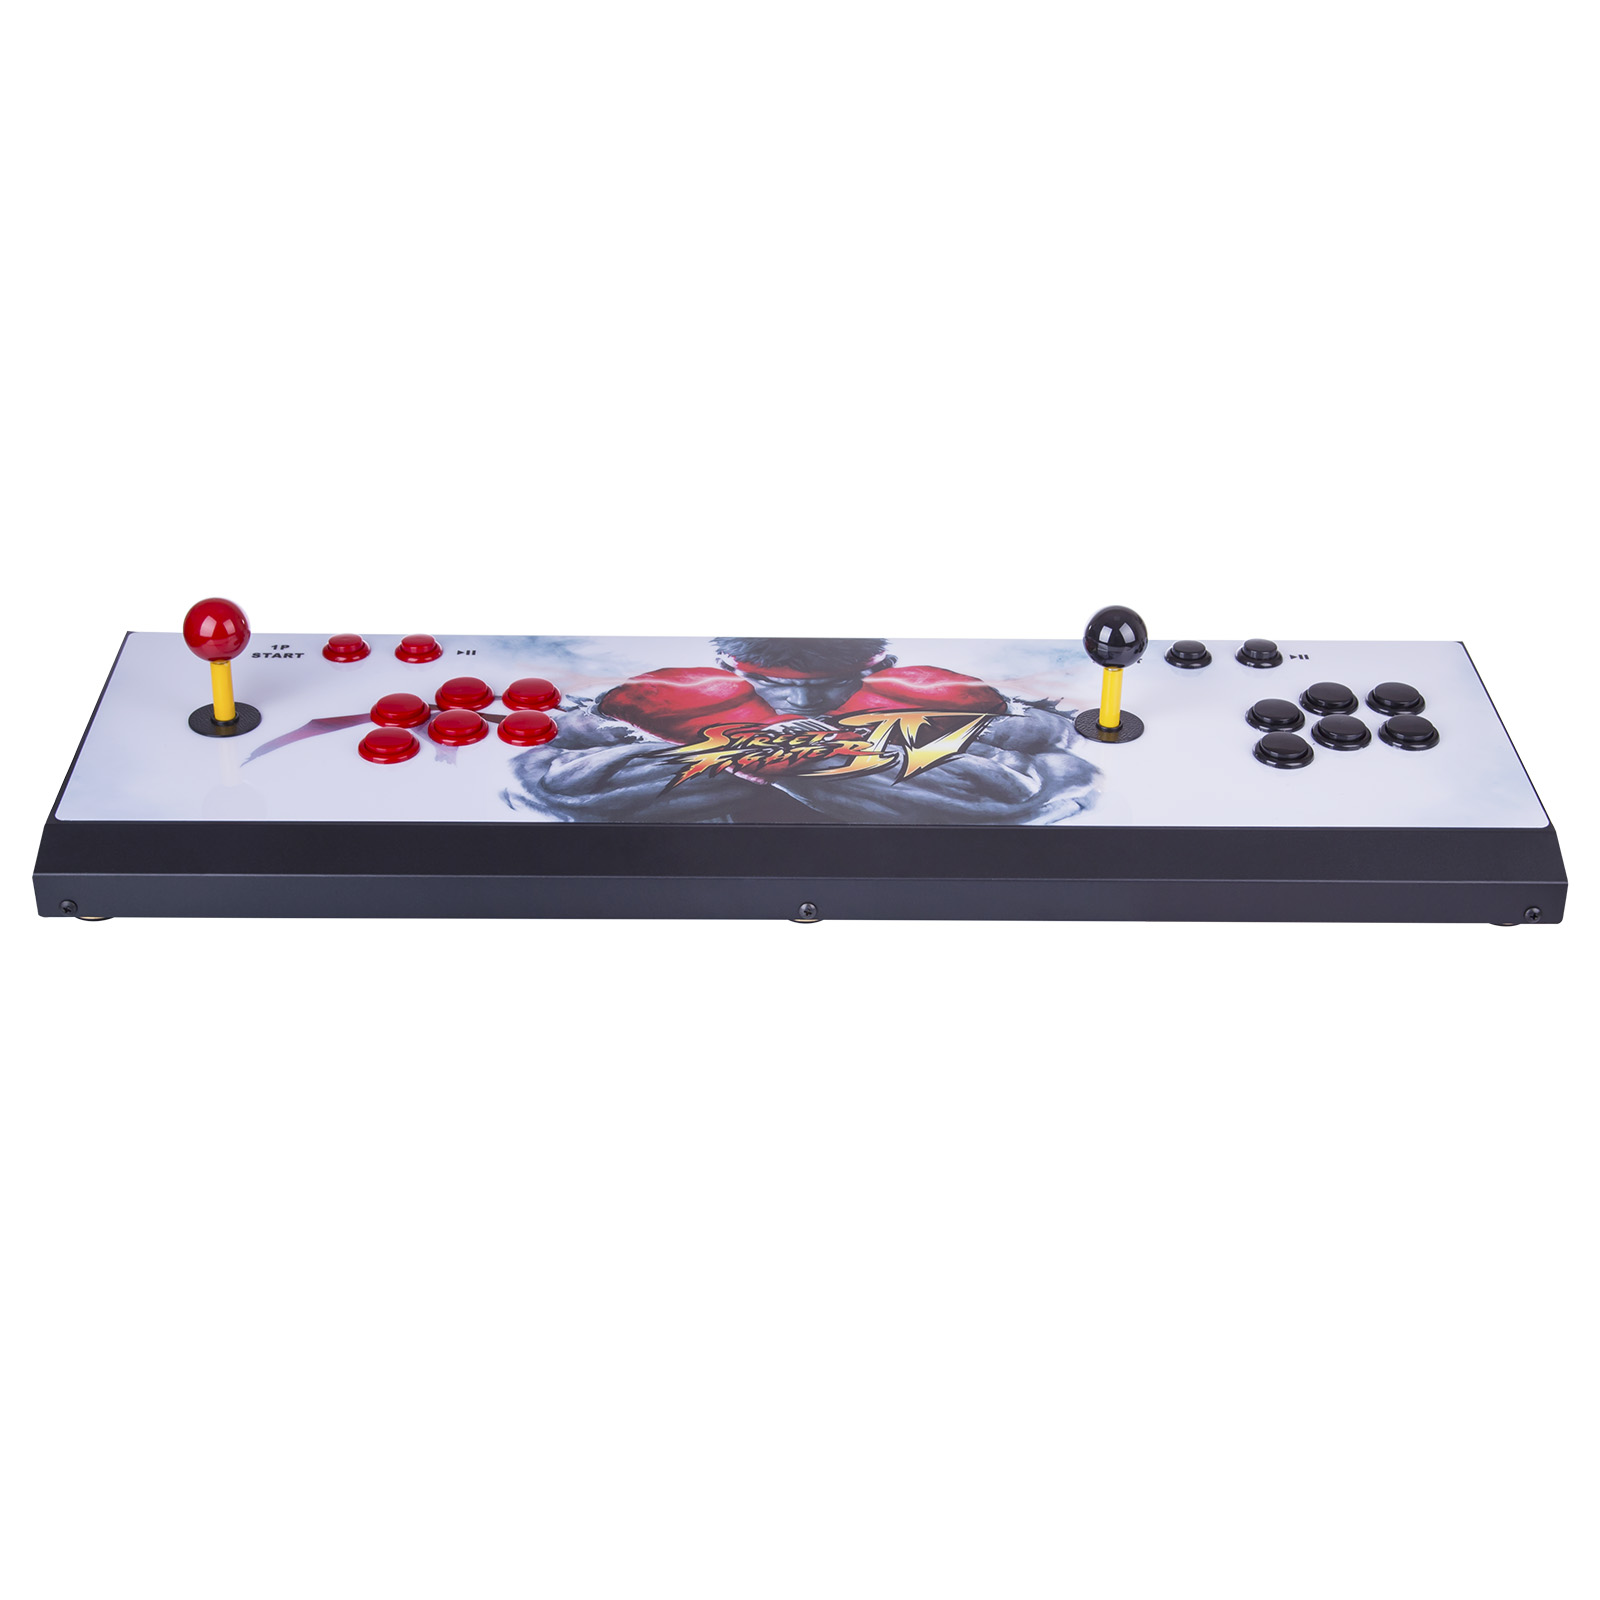 Pandora Box 3D+ 4018 Games Multi-player Arcade Game Console WiFi (All Metal and Bigger Version) (Artwork: Black Dragon)